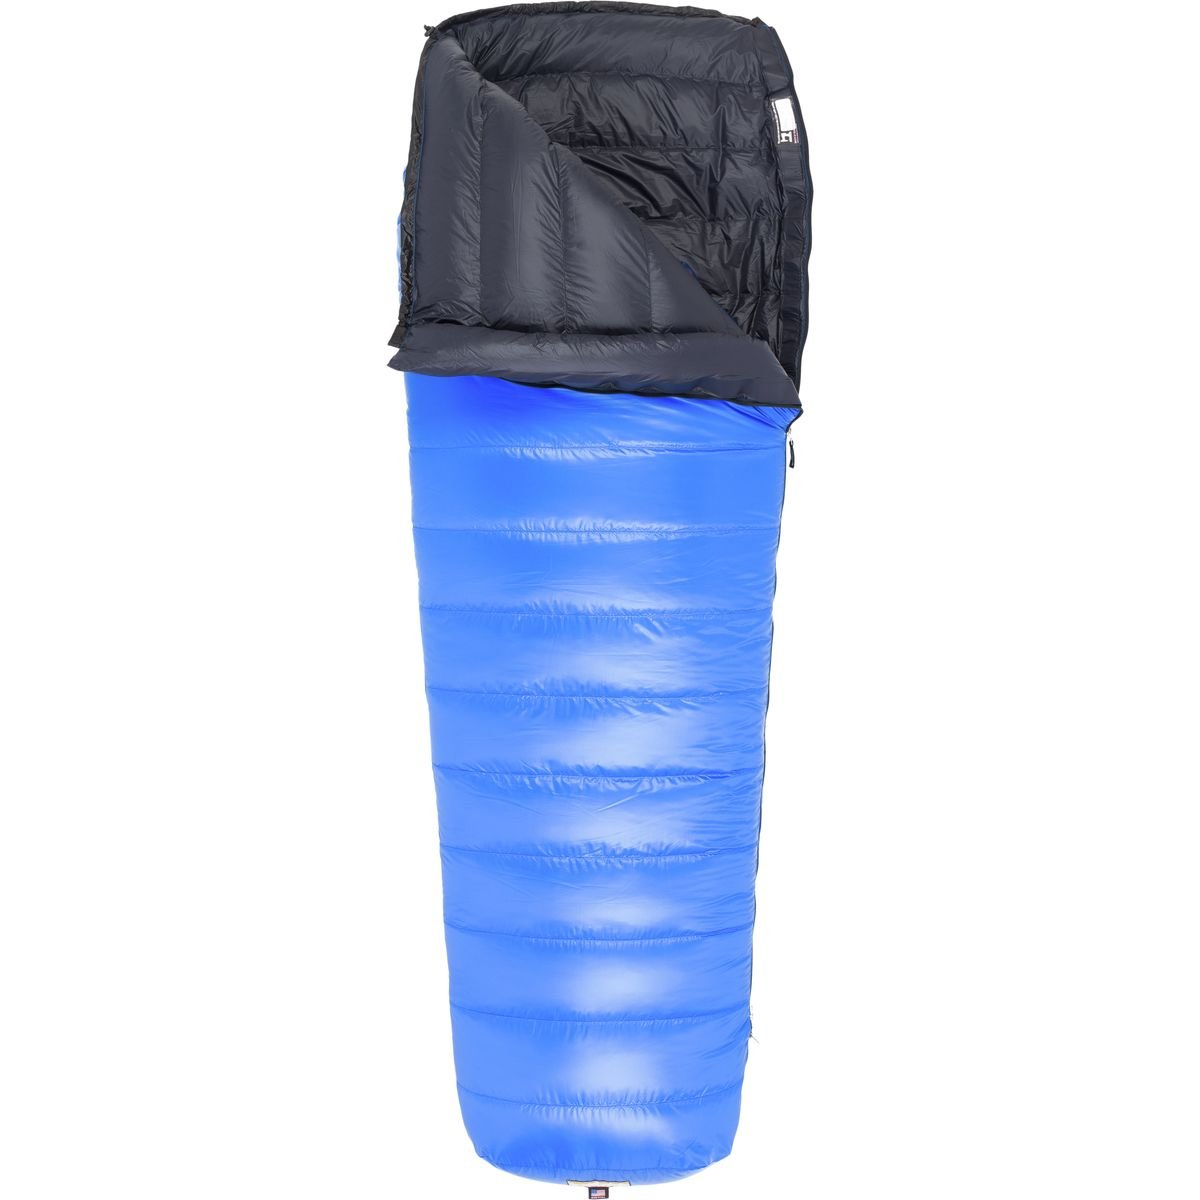 An image of Western Mountaineering Alder MF Sleeping Bag